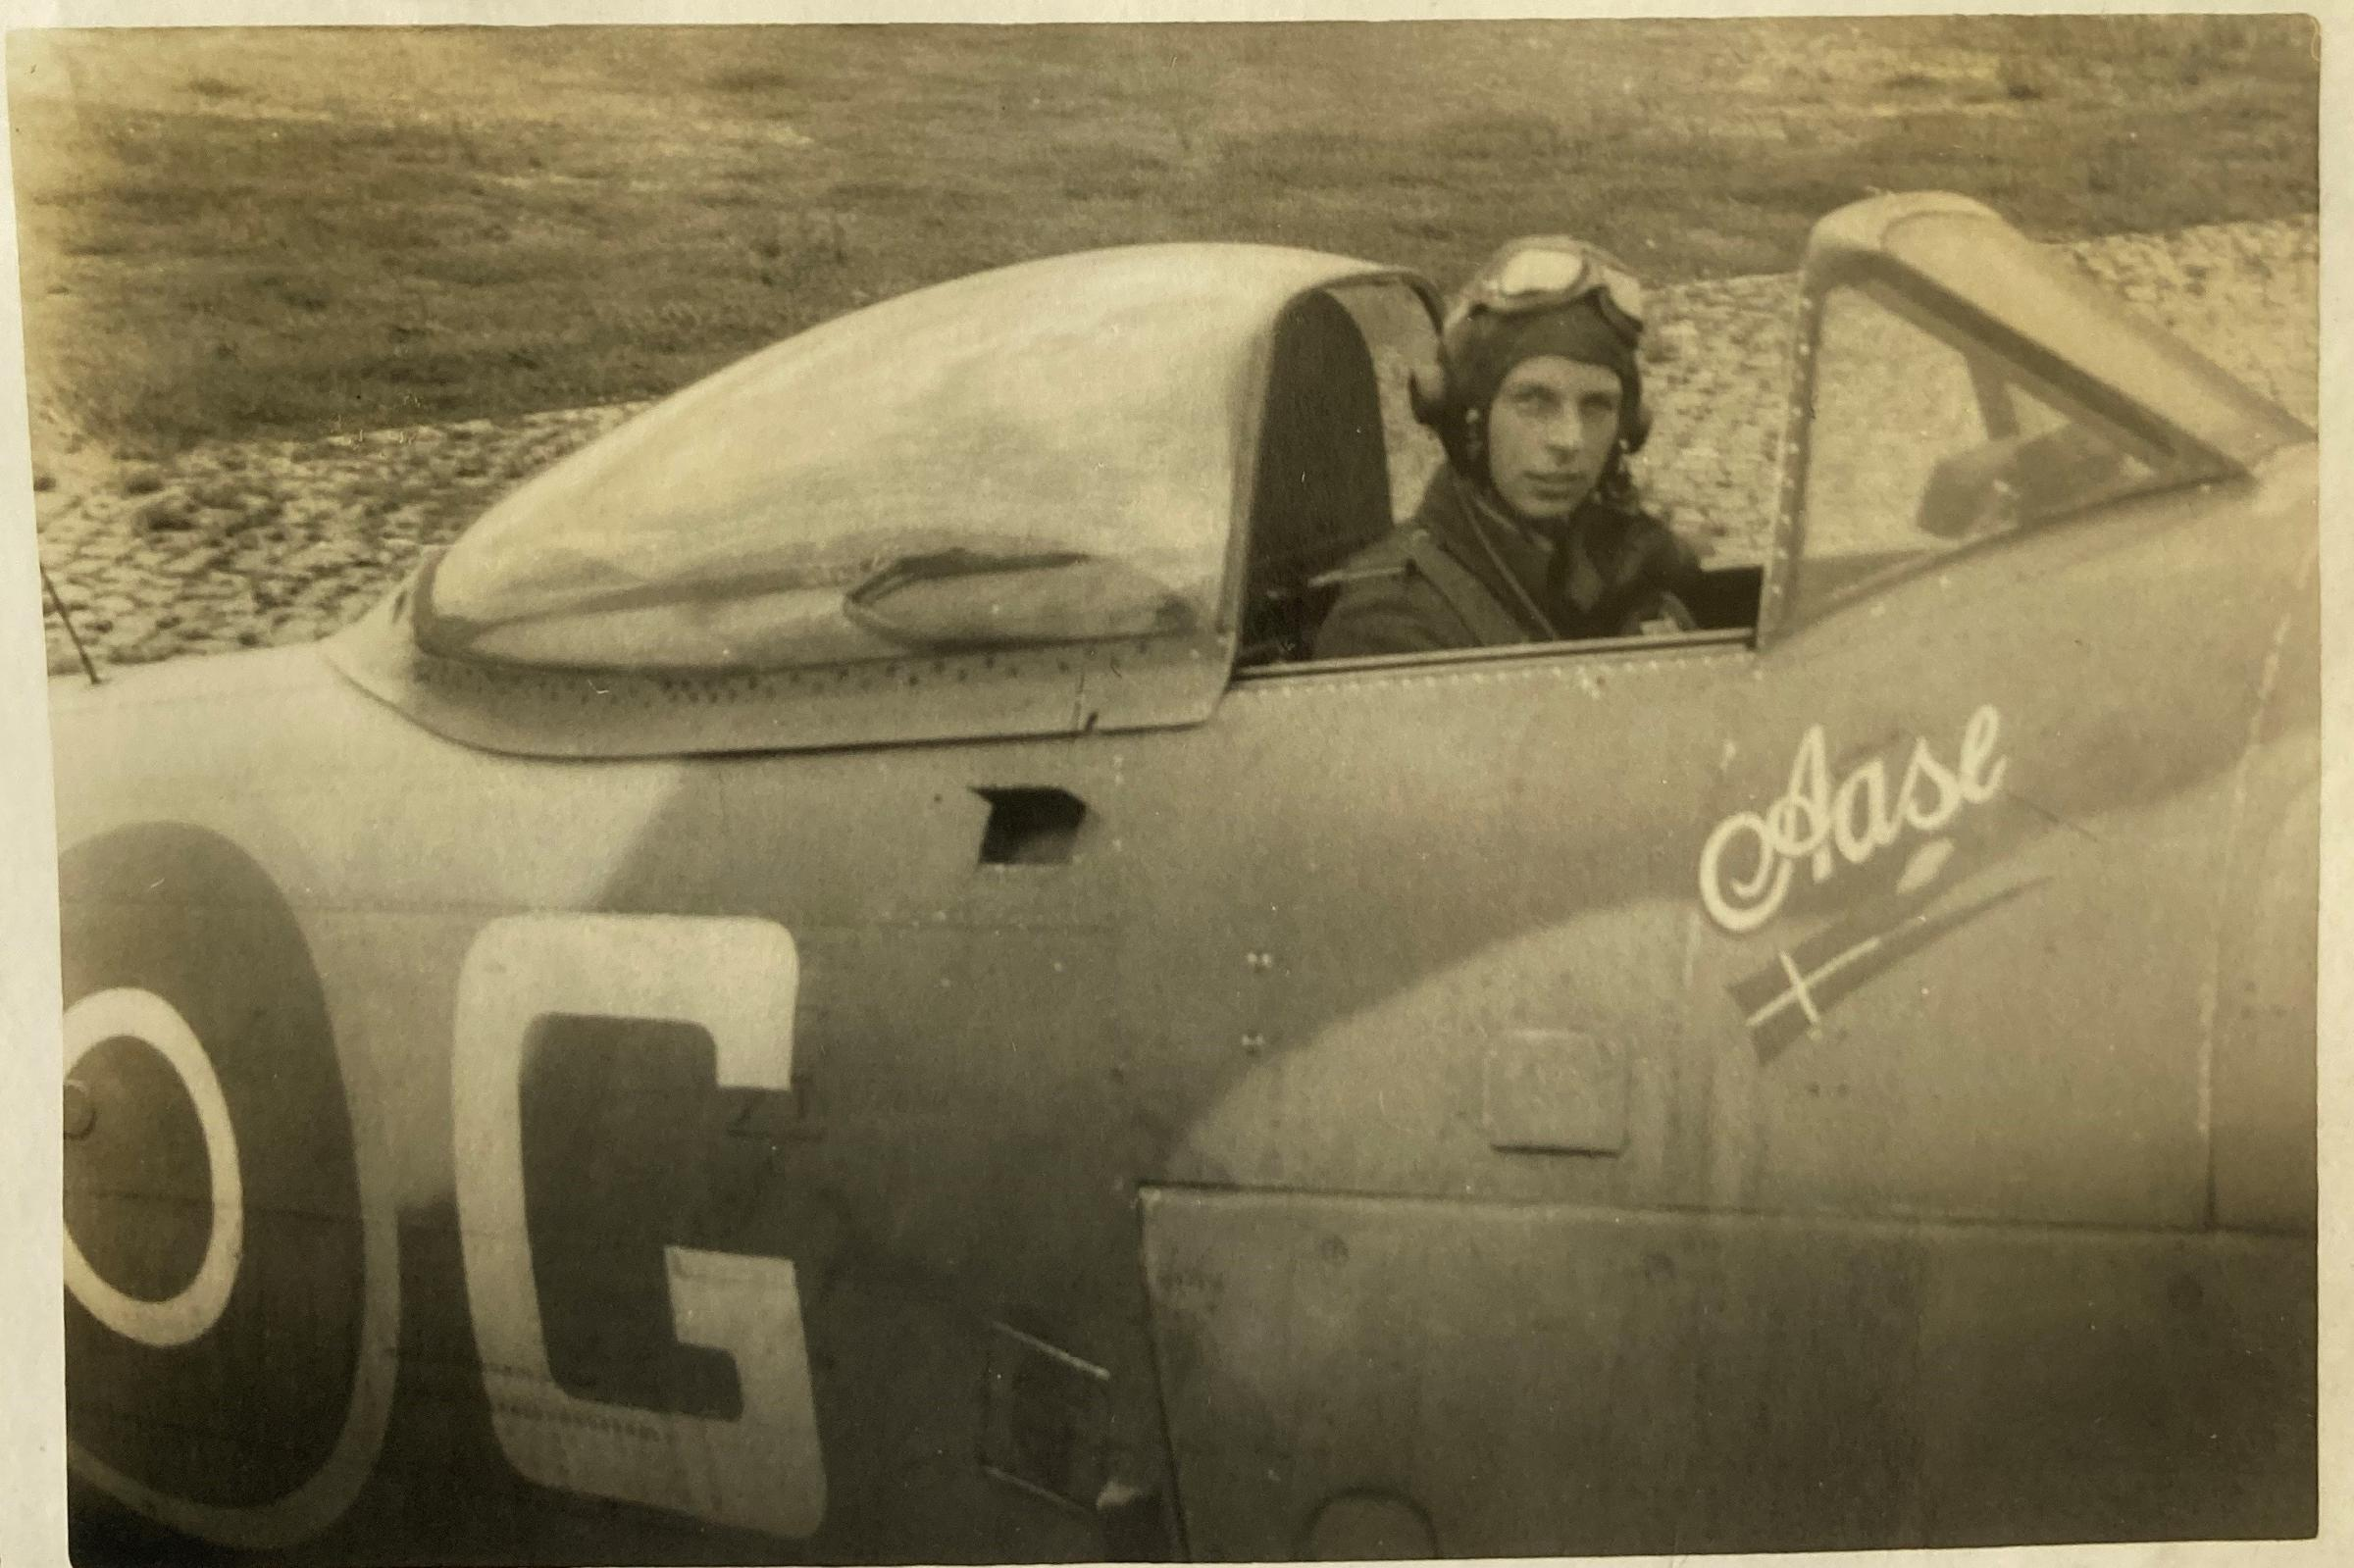 Fg Off. Forrest in Typhoon Ib SF-G. The aircraft has the girl name 'Aase' and the flag of the Kingdom of Denmark on the side of the fuselage. The photo was taken at B.160 Copenhagen/Kastrup or later, when the squadron had moved on to B.172 Husum on 21 June 1945.